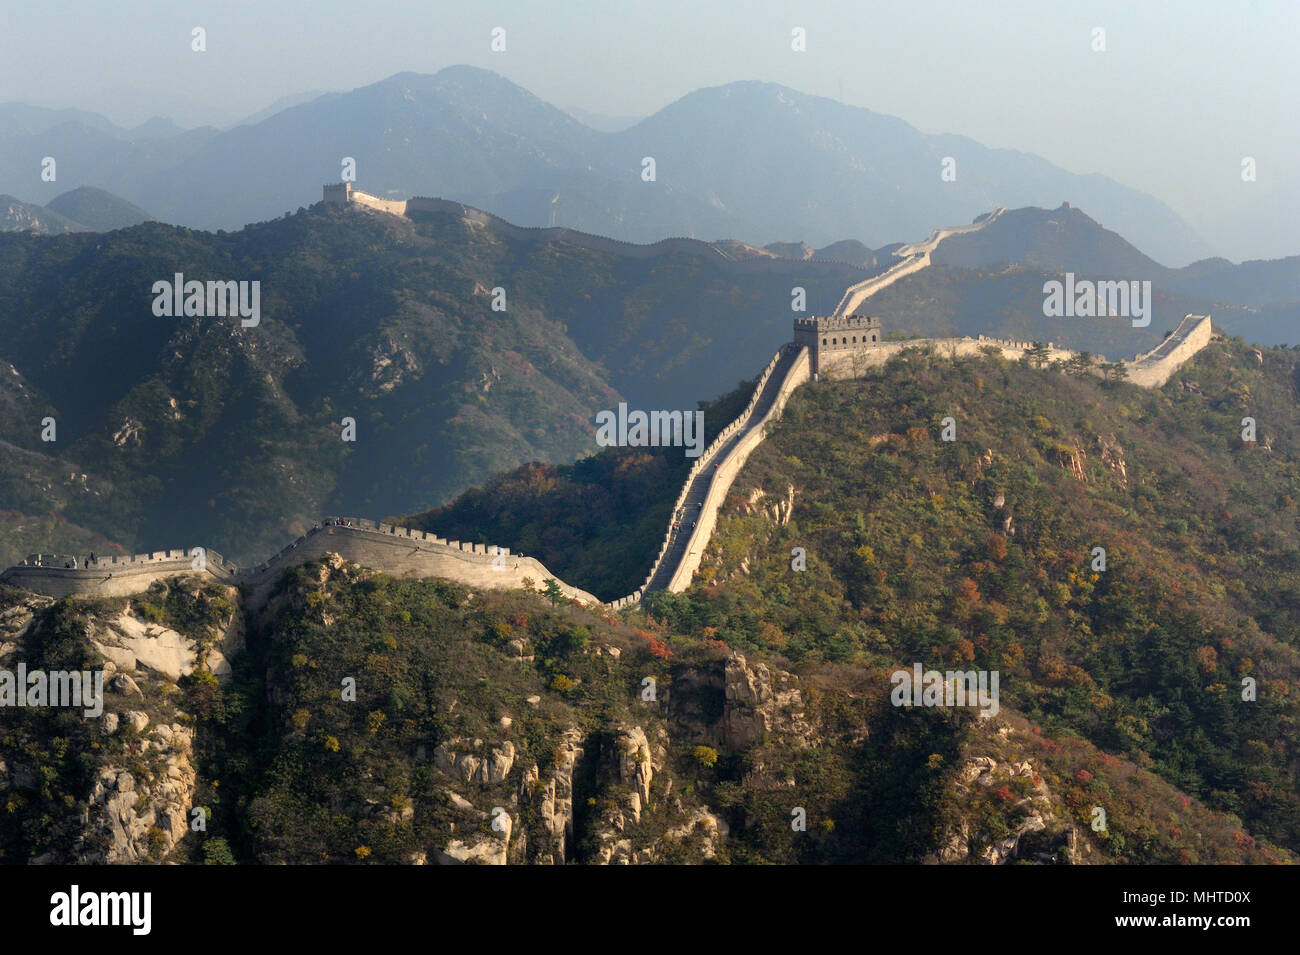 Great Wall over the mountains - Stock Image